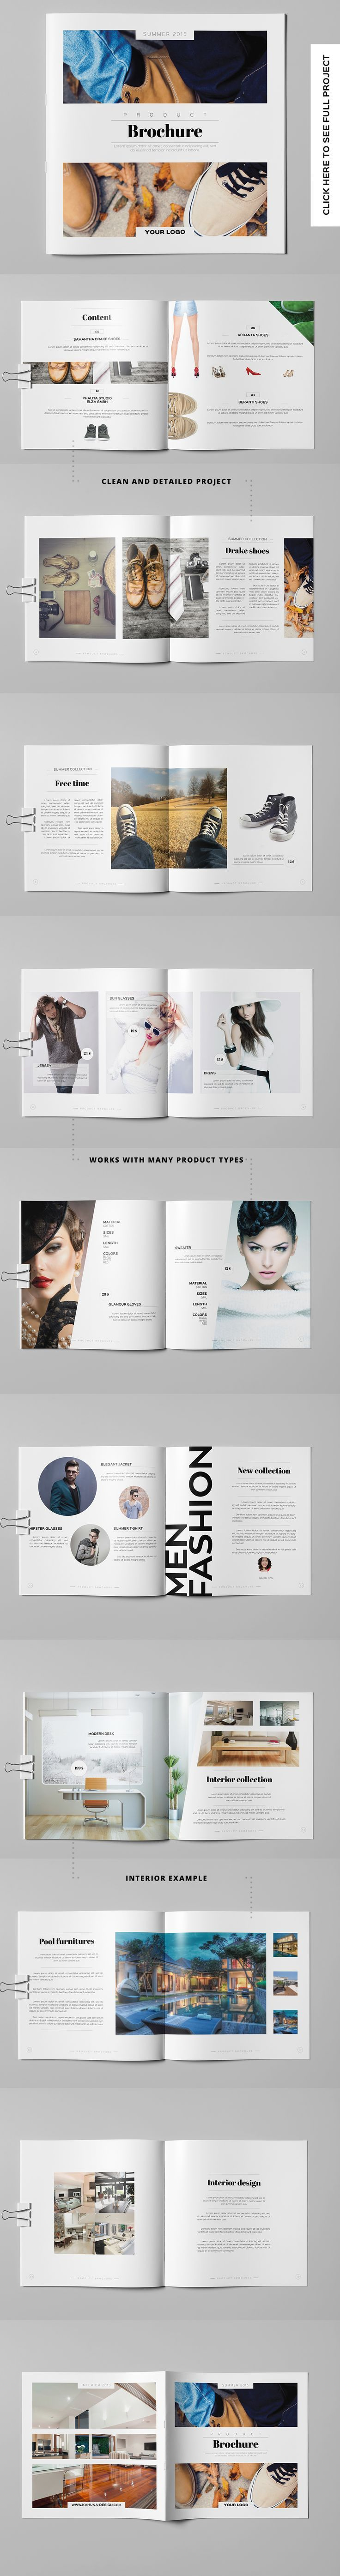 Product Brochure/Photo Book. I love the layout of these pages.